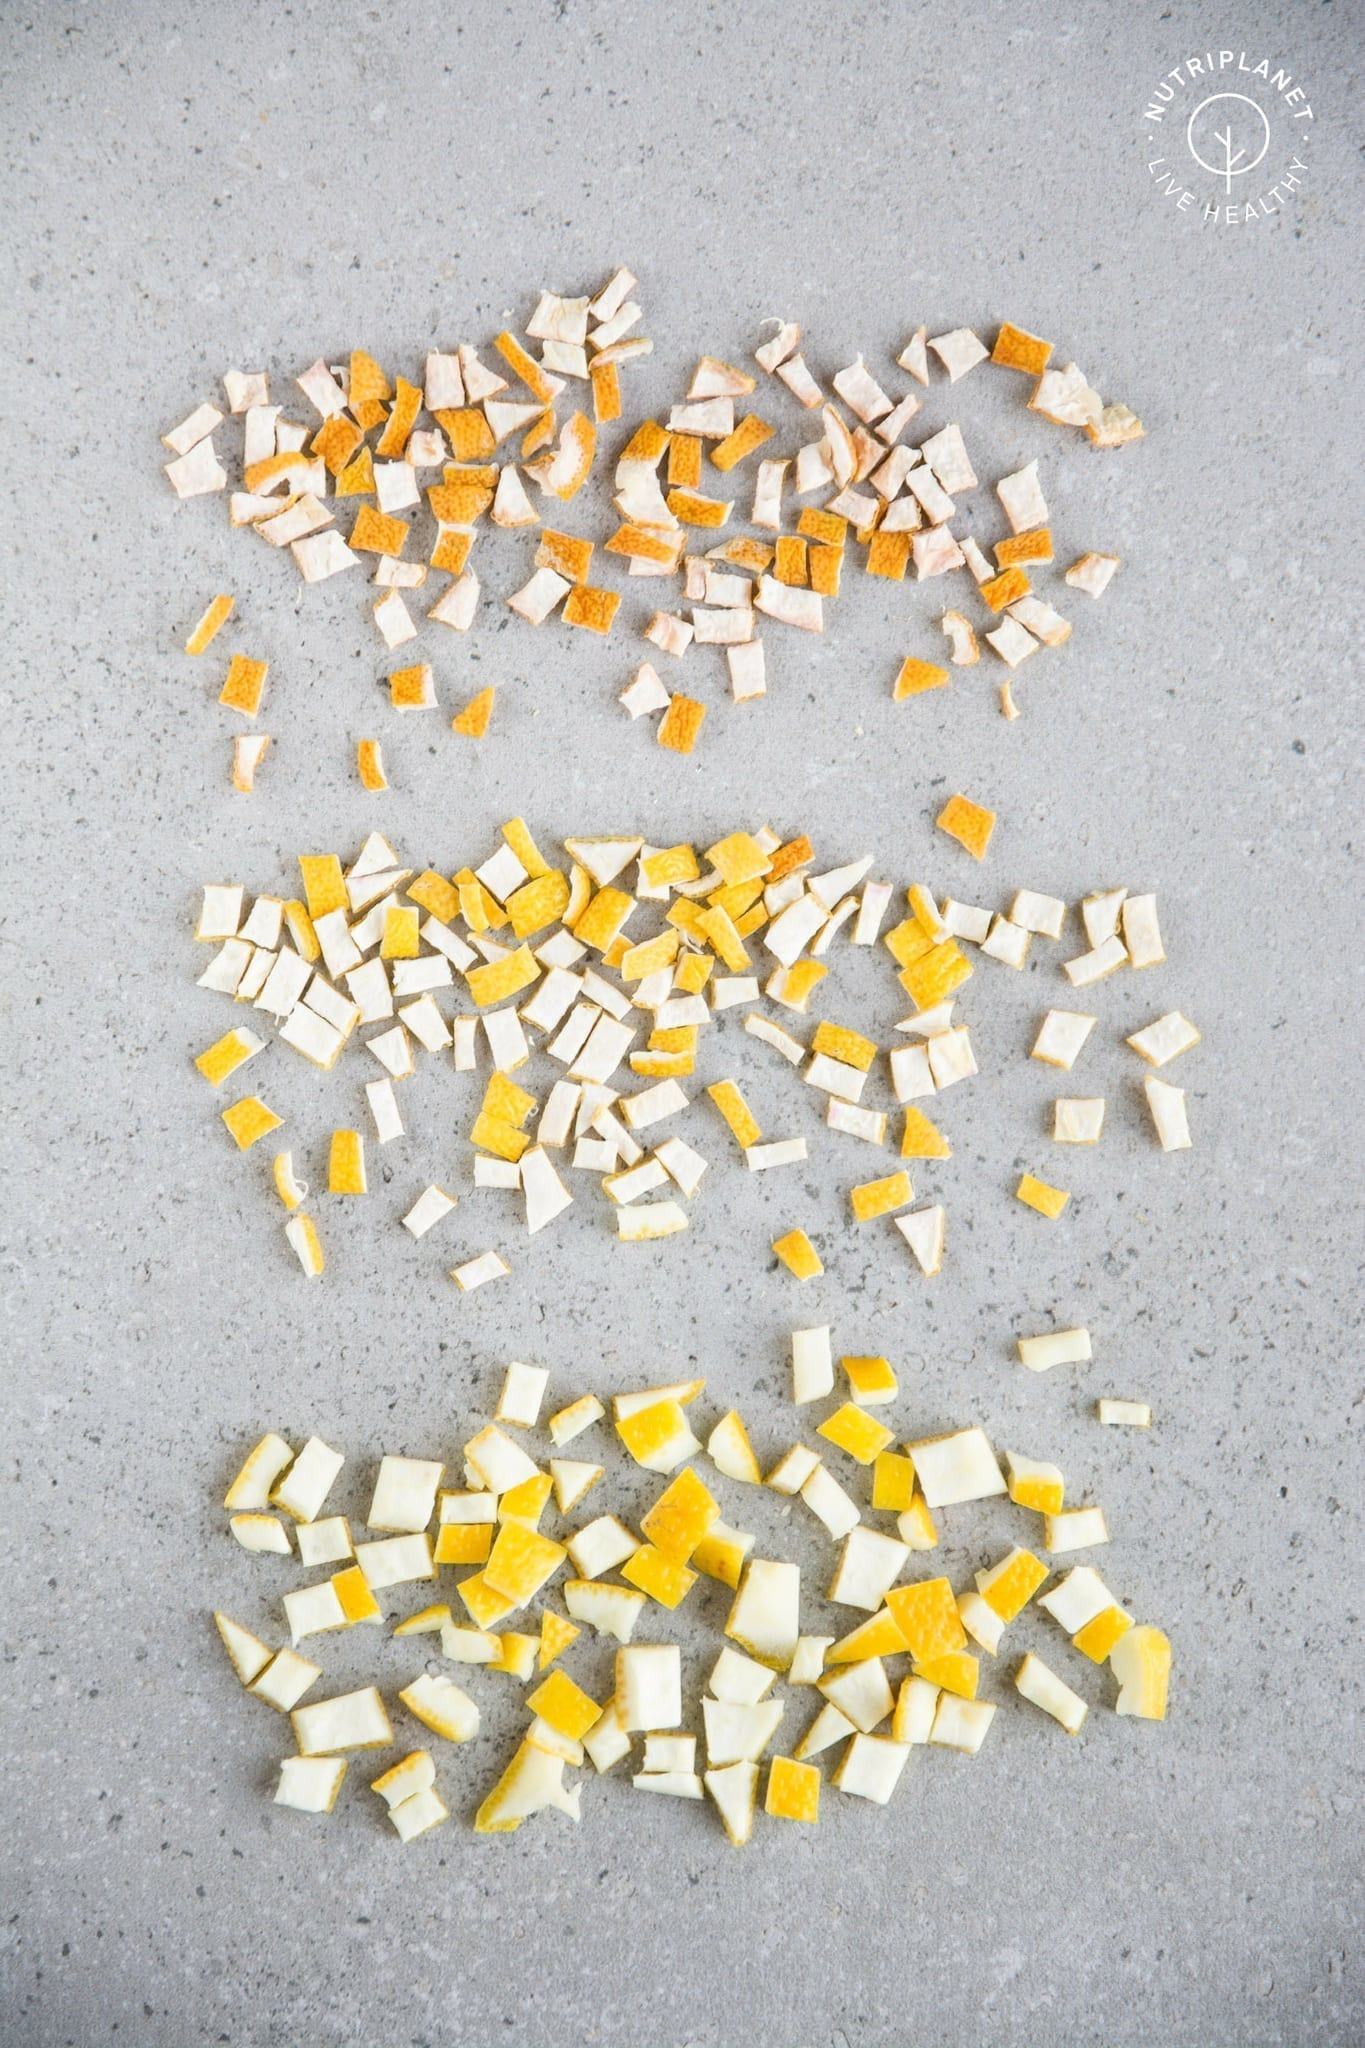 Dried Lemon Peel Powder